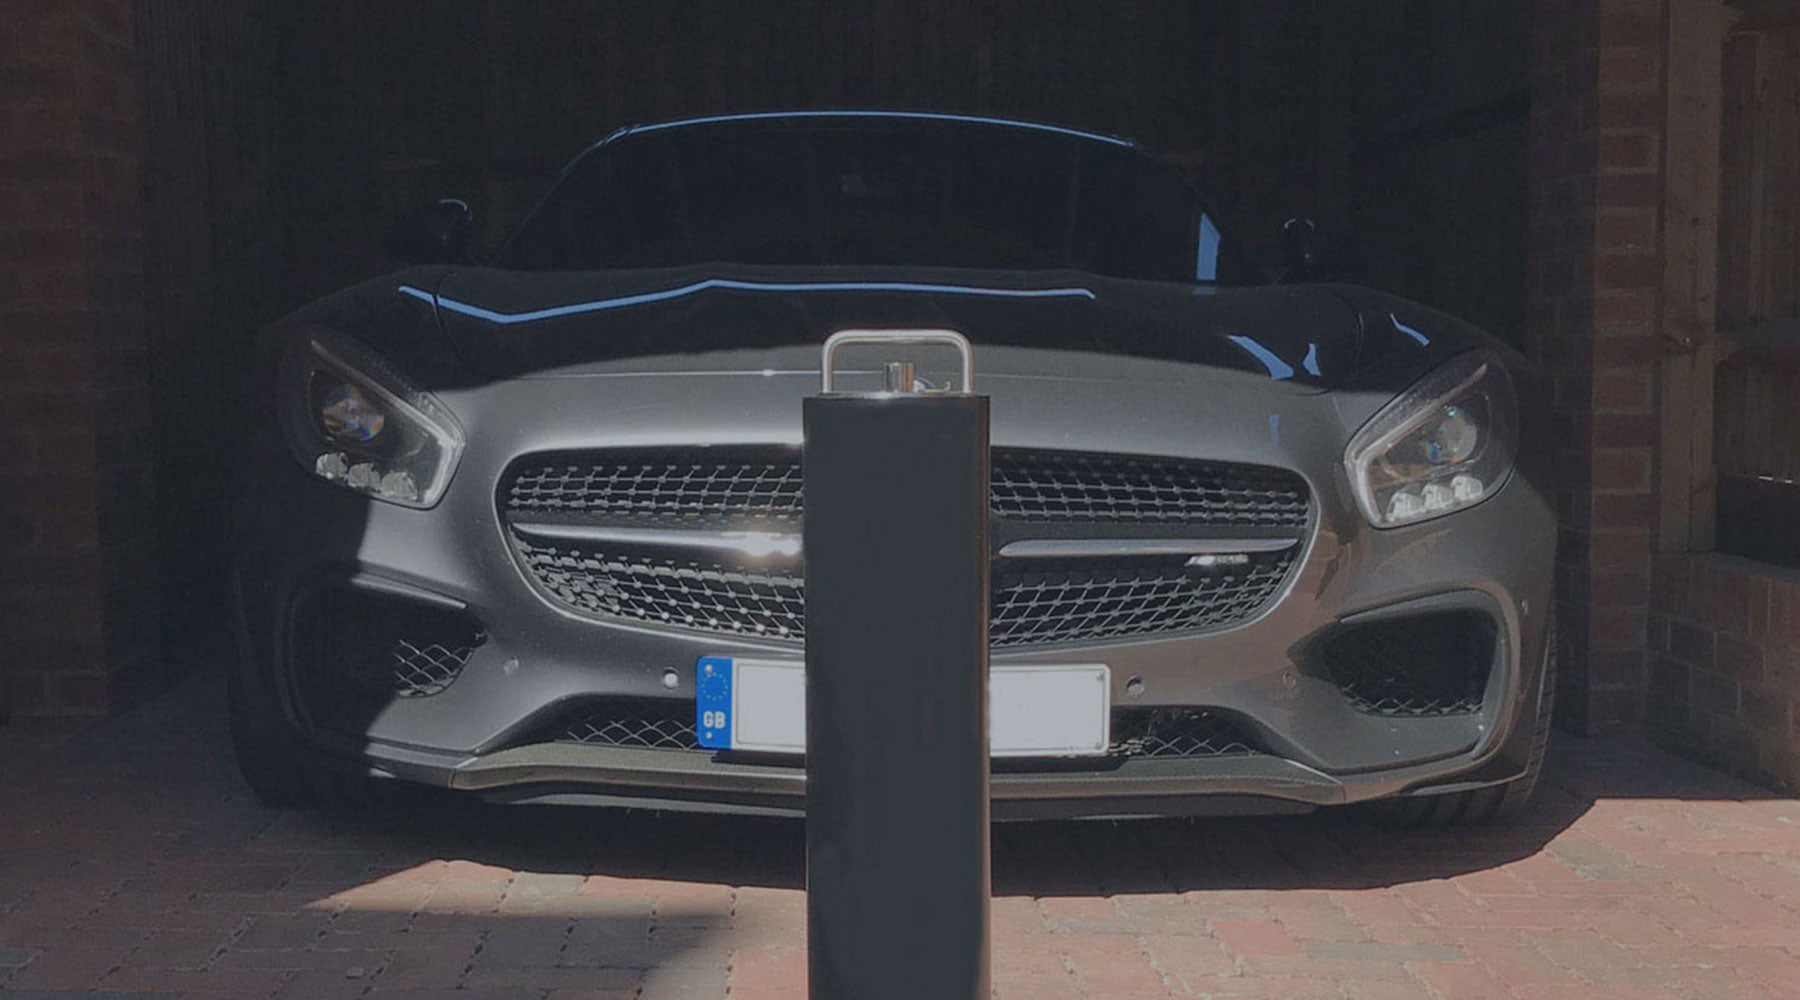 Telescopic security bollard on a private driveway protecting a Mercedes AMG sports car